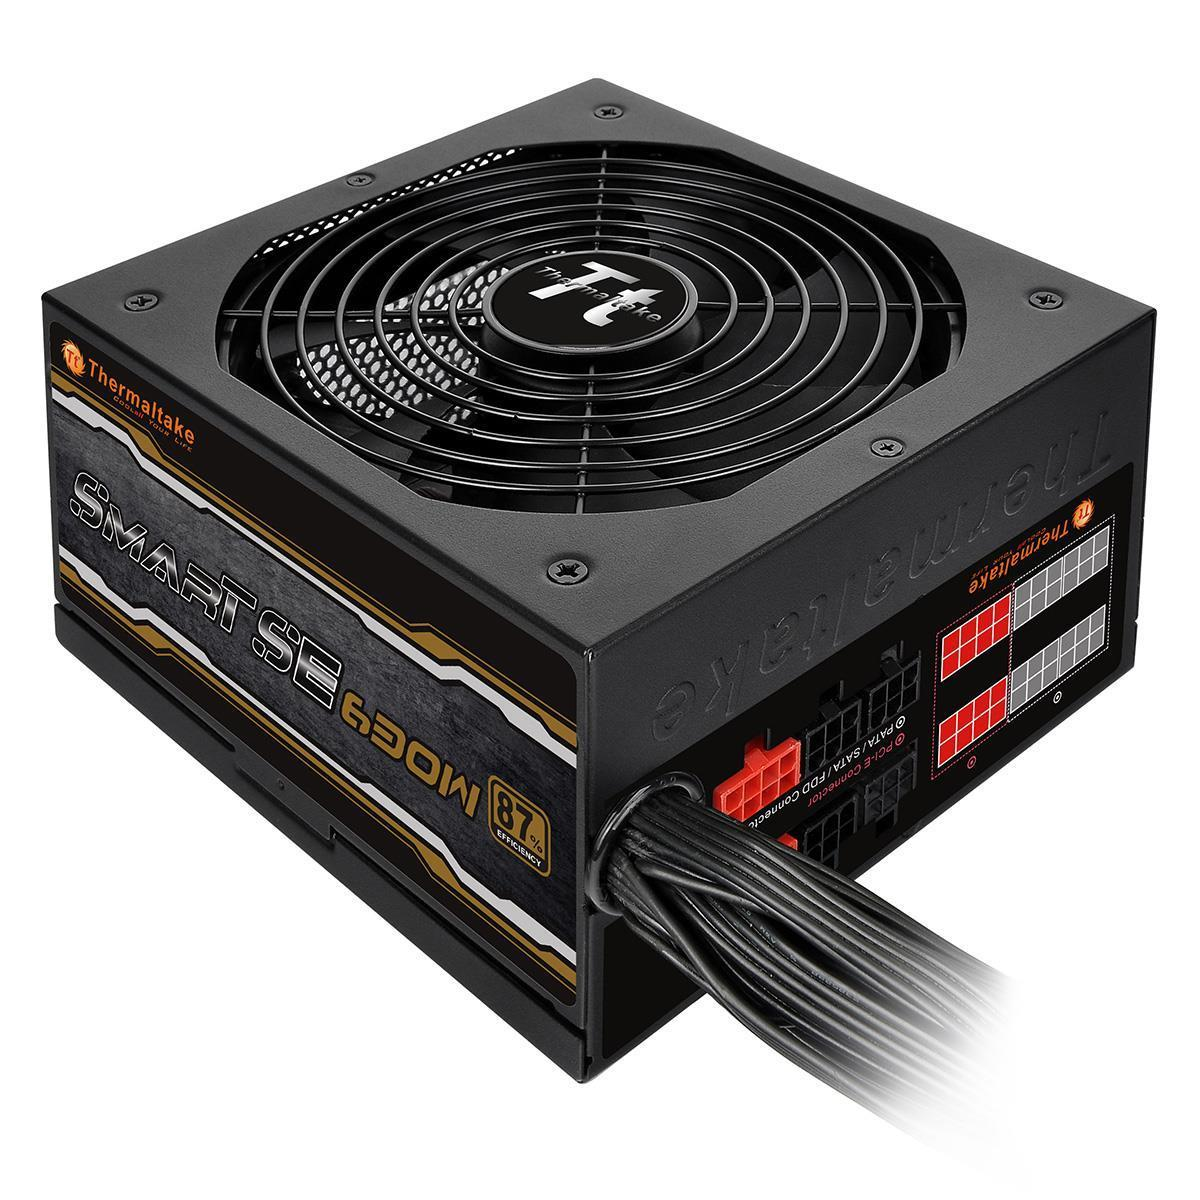 Thermaltake Smart SE 630W 80+ Bronze Efficiency PSU